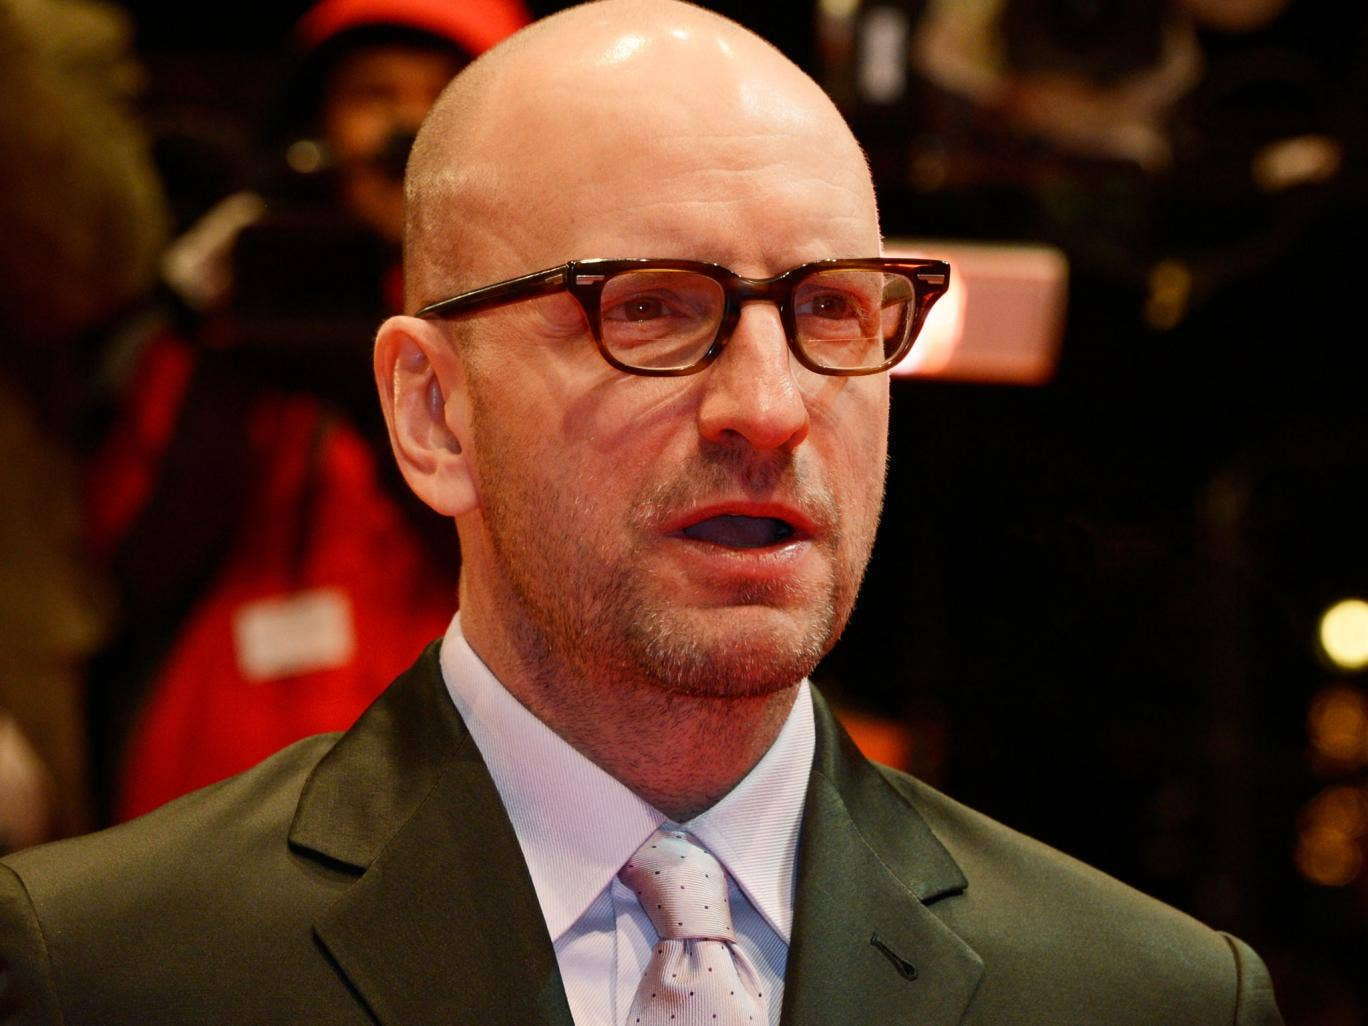 The filmmaker Steven Soderbergh appears to be writing a novella composed entirely of tweets